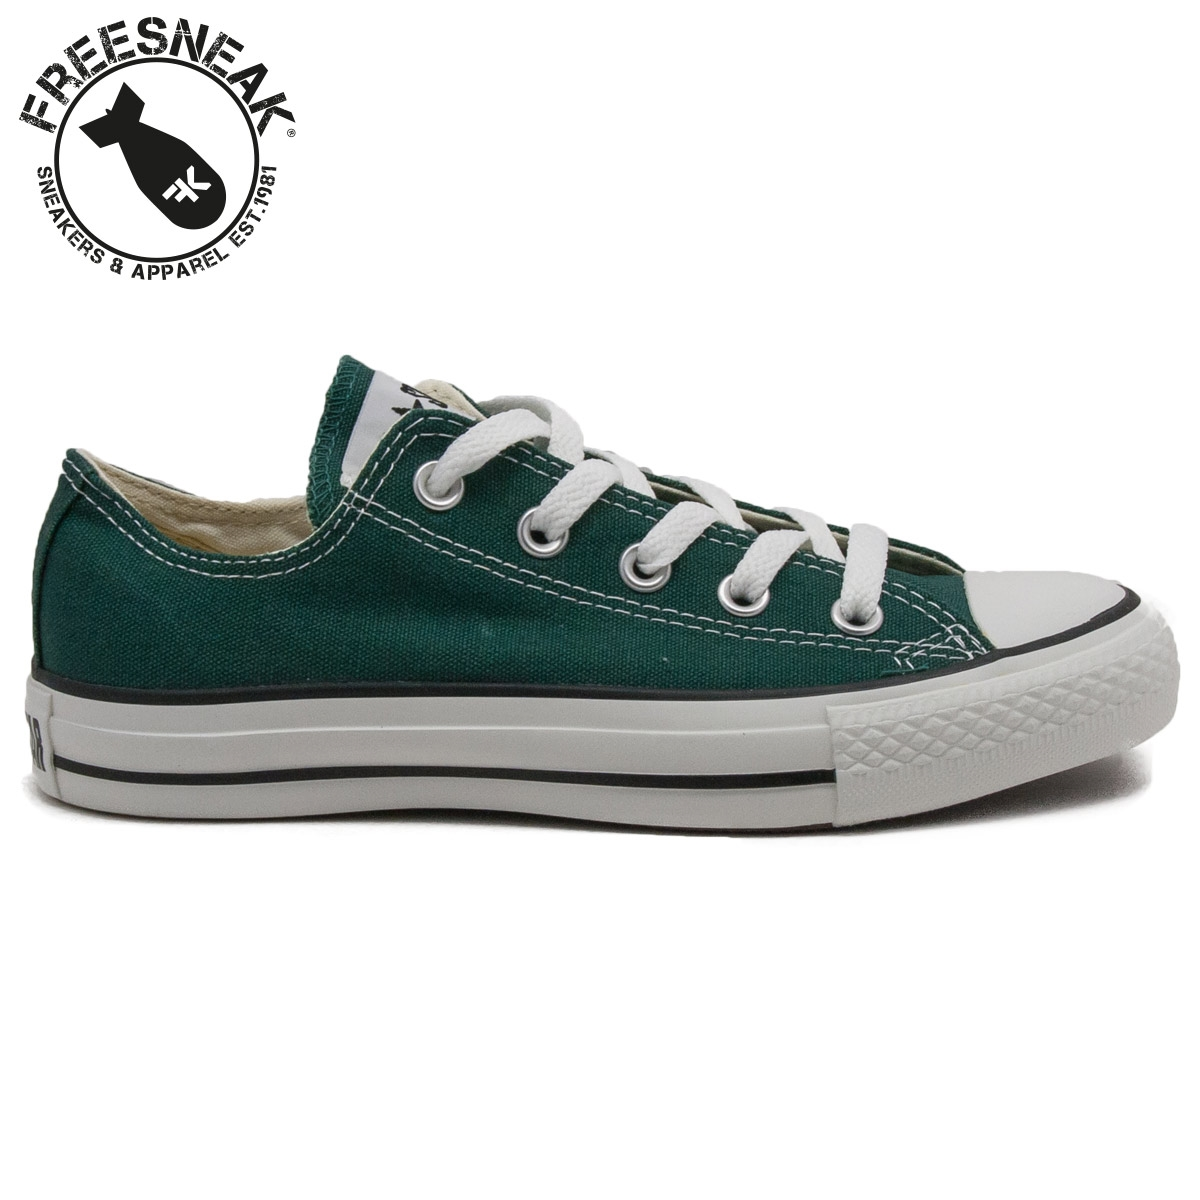 converse all star verde acqua